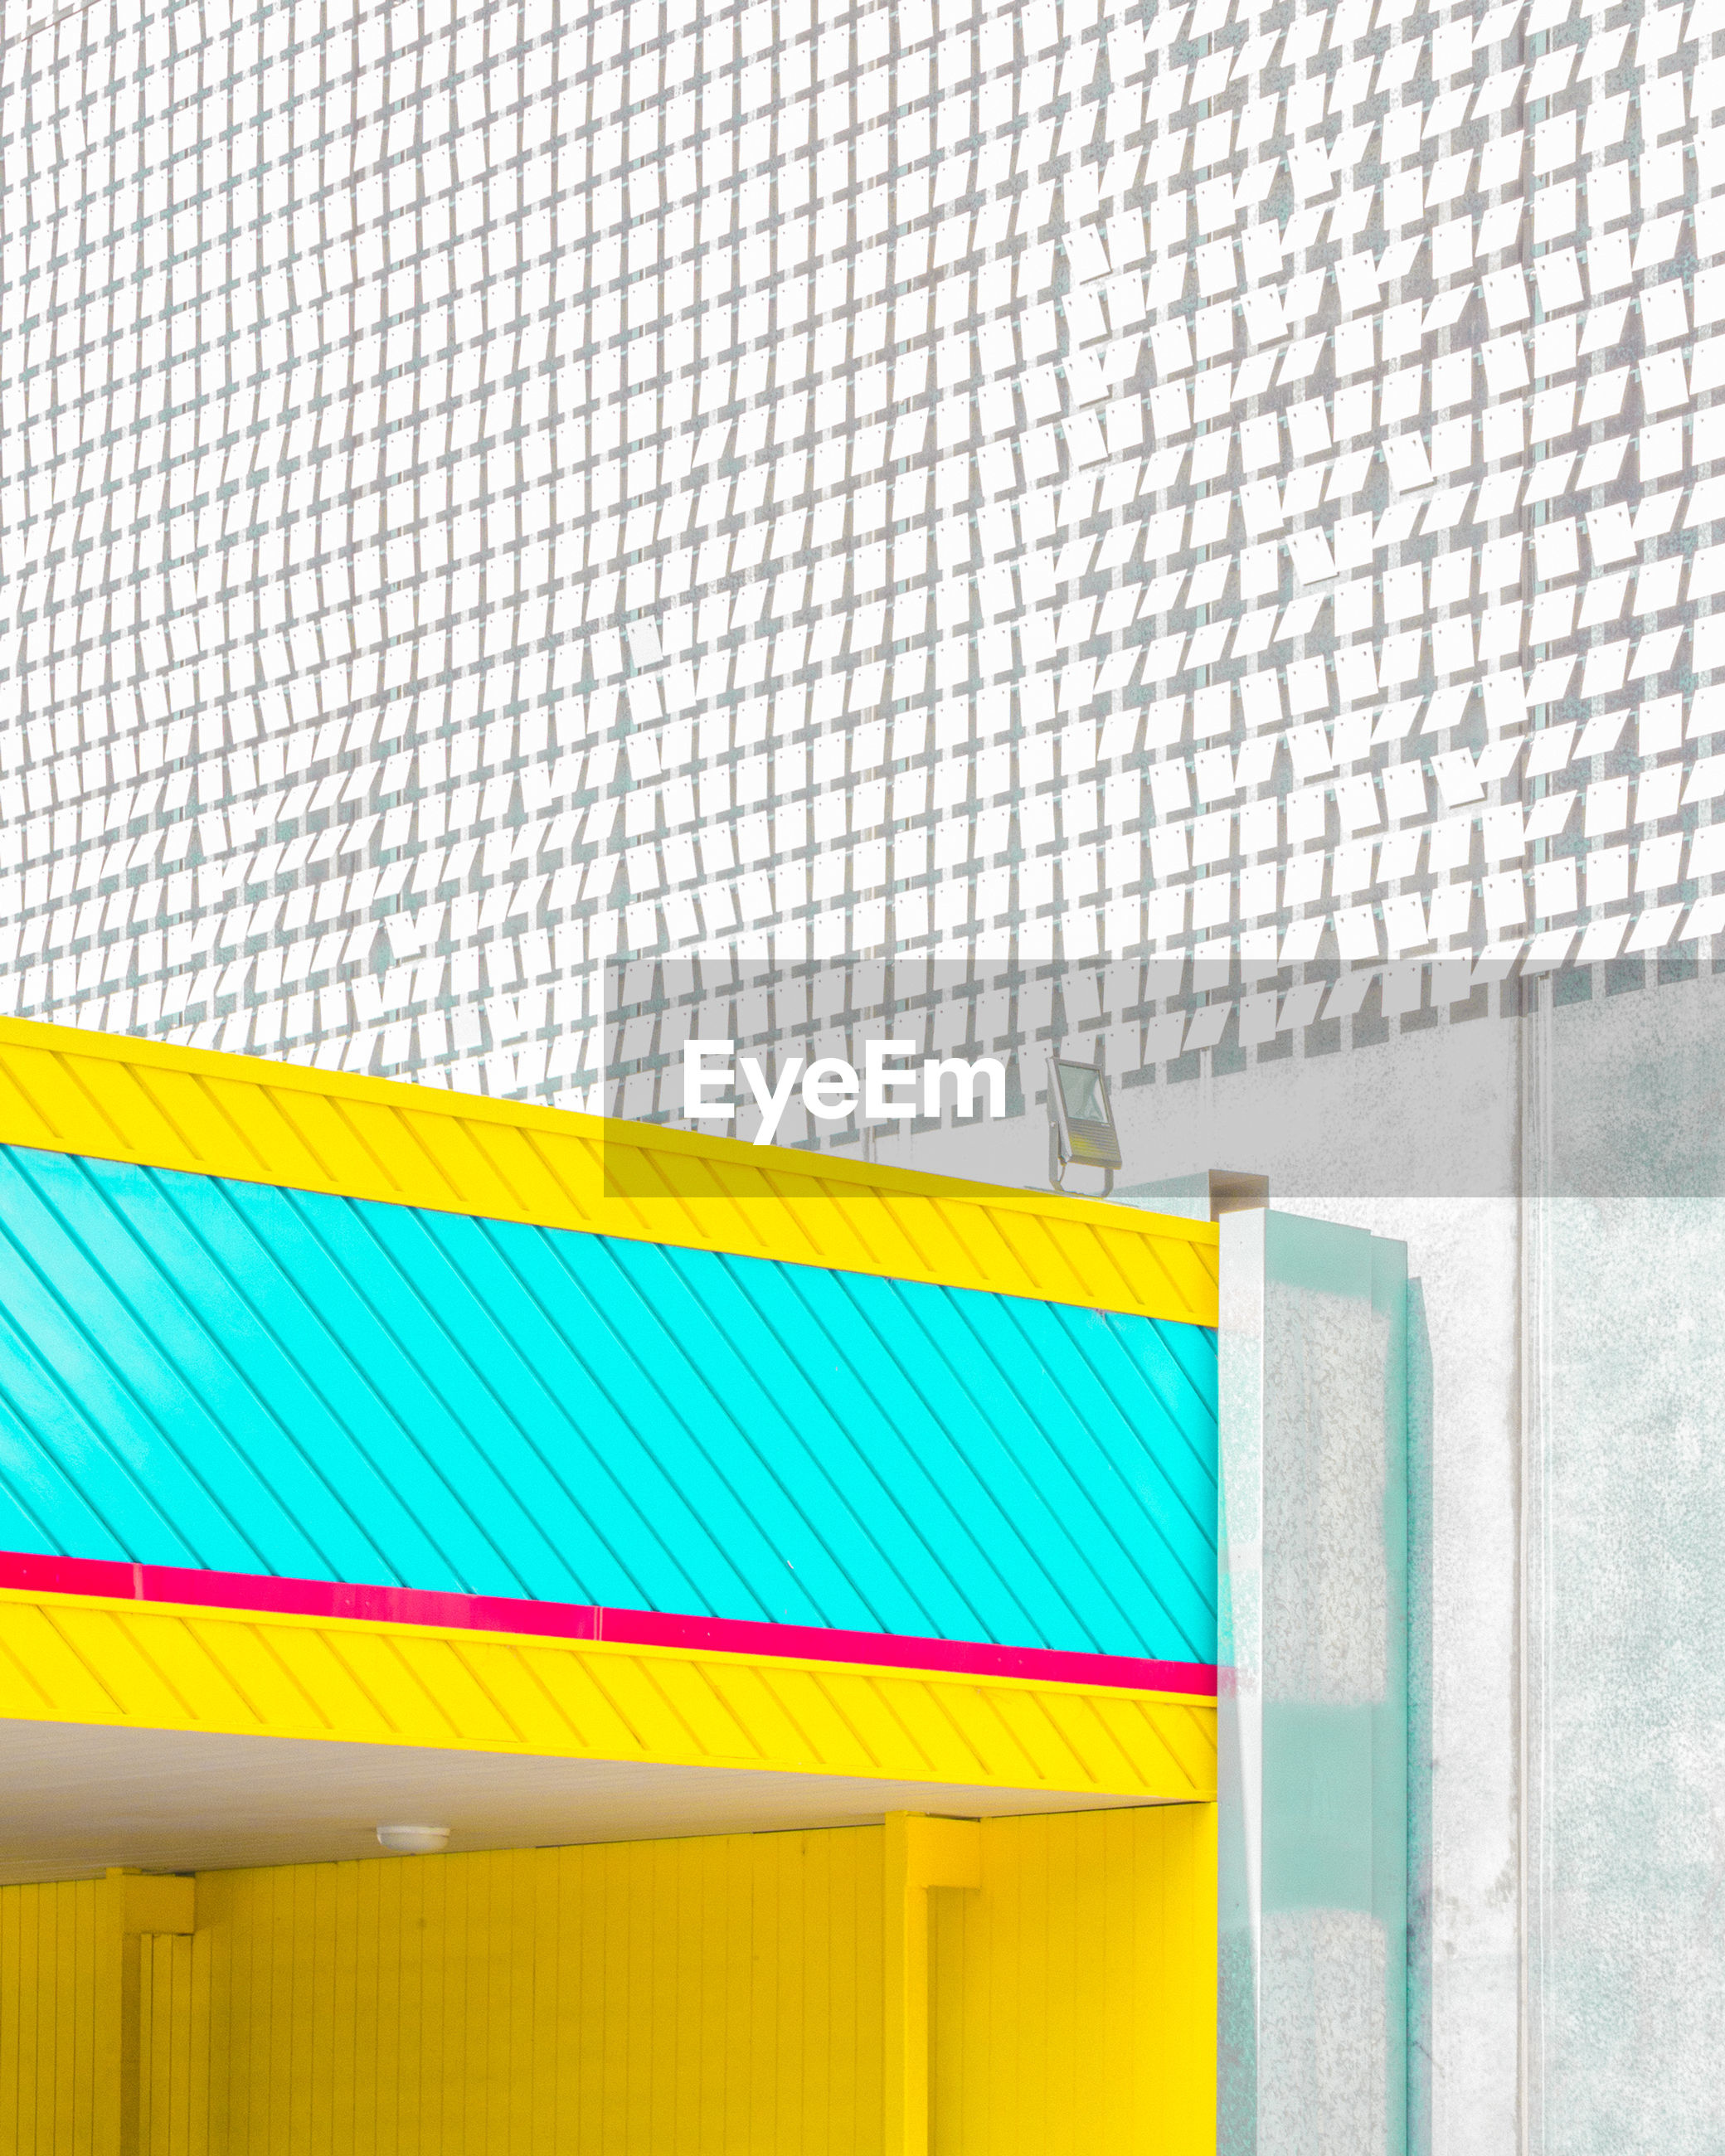 no people, architecture, yellow, day, built structure, multi colored, outdoors, building exterior, close-up